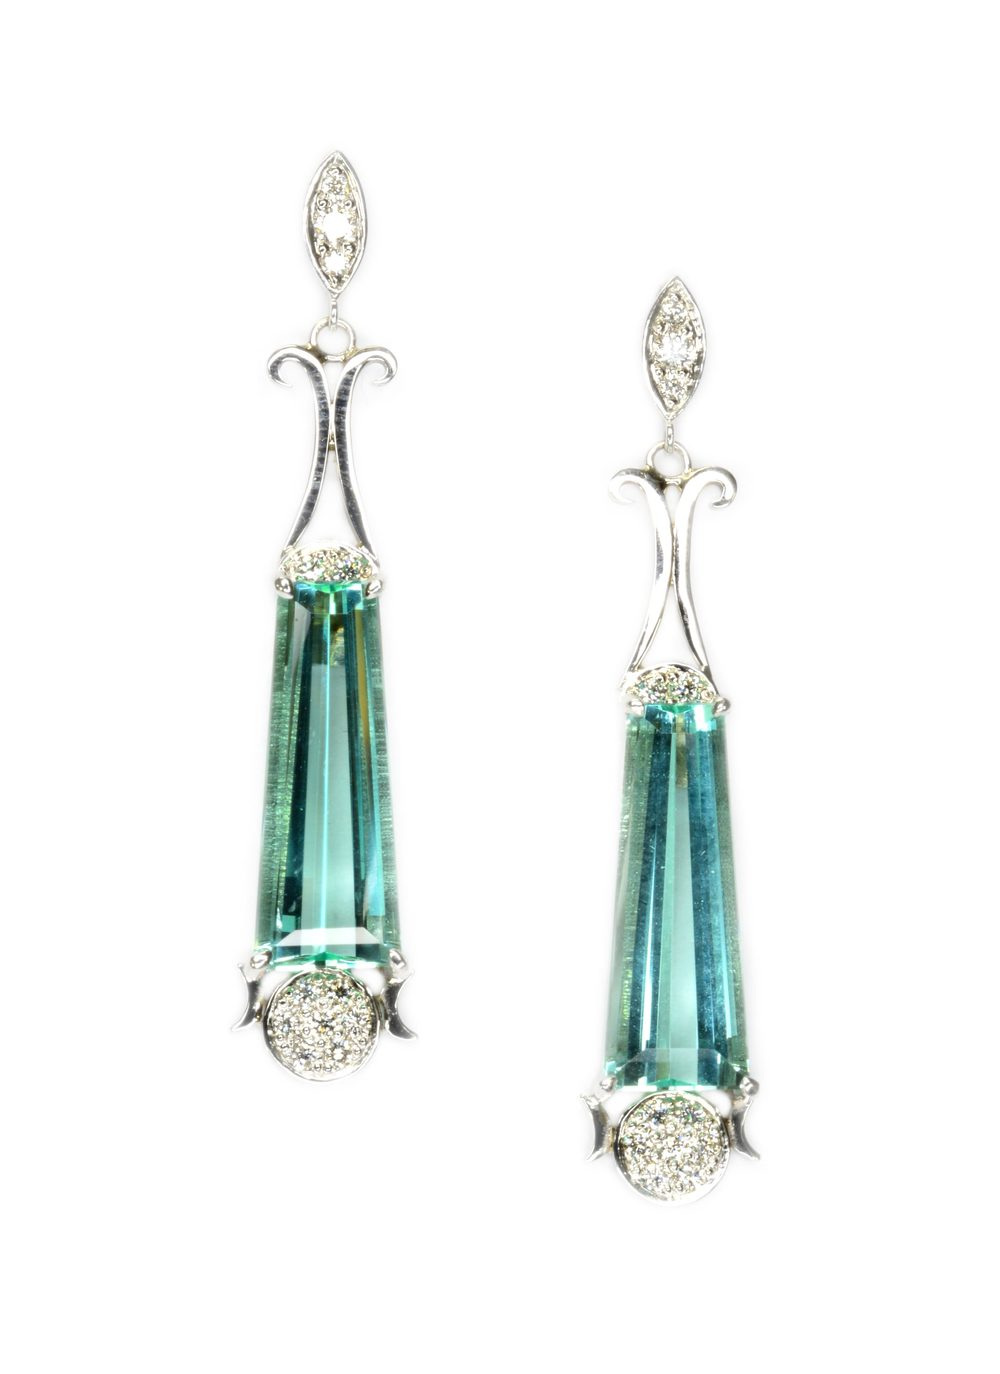 "14k white gold dangle style earrings set with a pair of fine green tourmalines, accented with pav     Normal   0           false   false   false     EN-US   X-NONE   X-NONE                                        MicrosoftInternetExplorer4                                         é                                                                                                                                                                                                                                                                                            /* Style Definitions */  table.MsoNormalTable 	{mso-style-name:""Table Normal""; 	mso-tstyle-rowband-size:0; 	mso-tstyle-colband-size:0; 	mso-style-noshow:yes; 	mso-style-priority:99; 	mso-style-qformat:yes; 	mso-style-parent:""""; 	mso-padding-alt:0in 5.4pt 0in 5.4pt; 	mso-para-margin-top:0in; 	mso-para-margin-right:0in; 	mso-para-margin-bottom:10.0pt; 	mso-para-margin-left:0in; 	mso-pagination:widow-orphan; 	font-size:11.0pt; 	font-family:""Calibri"",""sans-serif""; 	mso-ascii-font-family:Calibri; 	mso-ascii-theme-font:minor-latin; 	mso-fareast-font-family:""Times New Roman""; 	mso-fareast-theme-font:minor-fareast; 	mso-hansi-font-family:Calibri; 	mso-hansi-theme-font:minor-latin;}                set diamonds, designed by Sharon Curtiss-Gal."